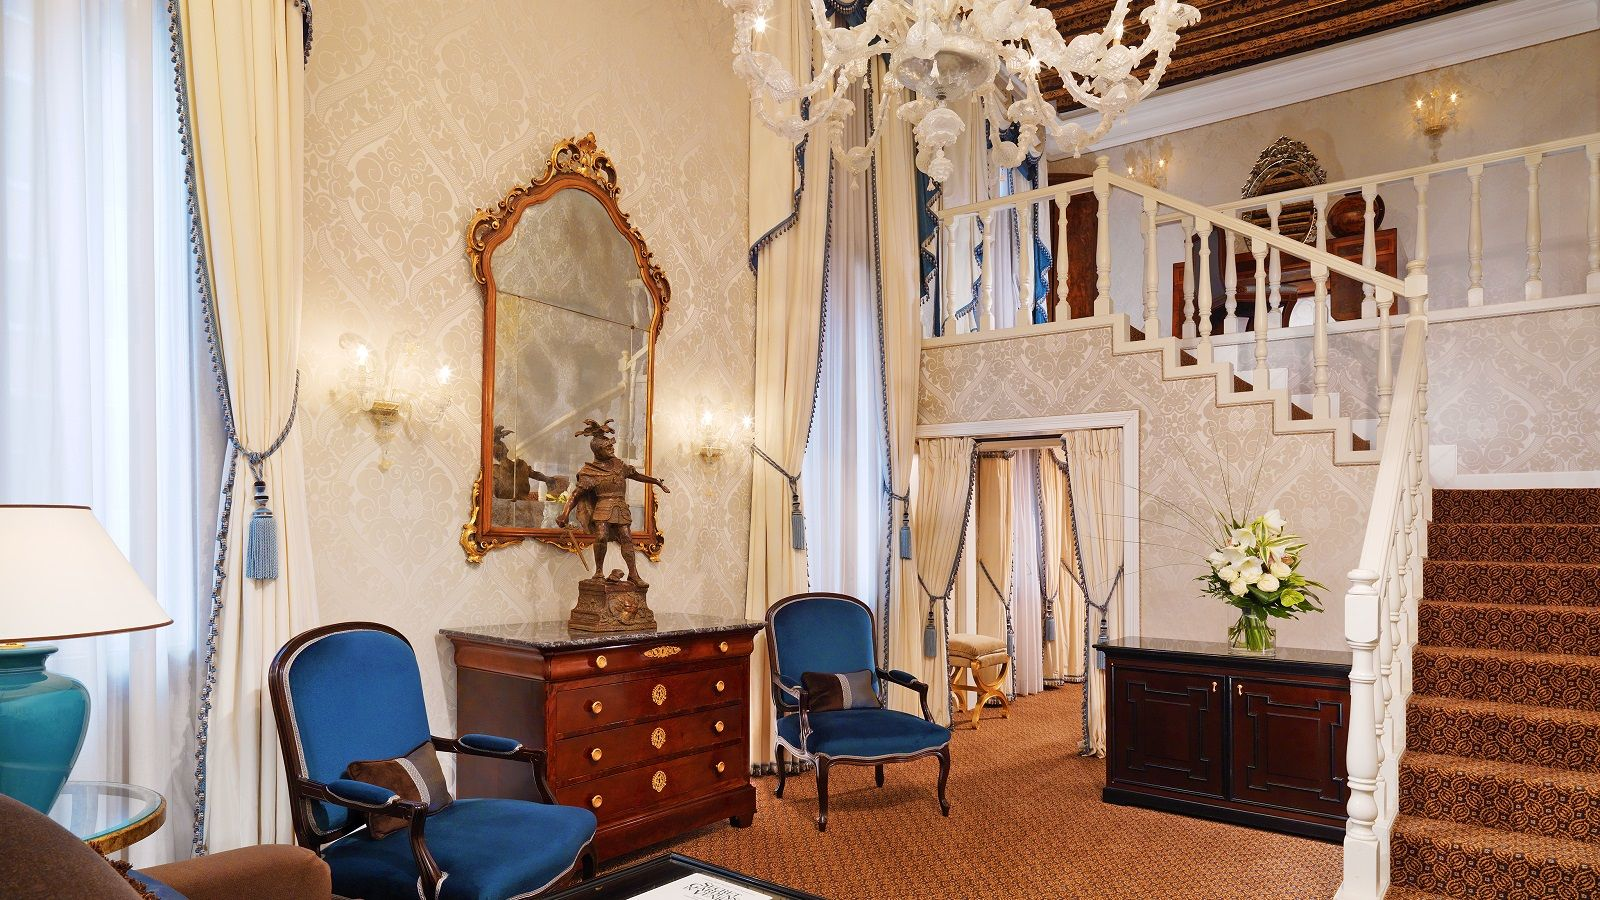 Image of the One Bedroom Deluxe Suite Living area at The Westin Europa & Regina, Venice